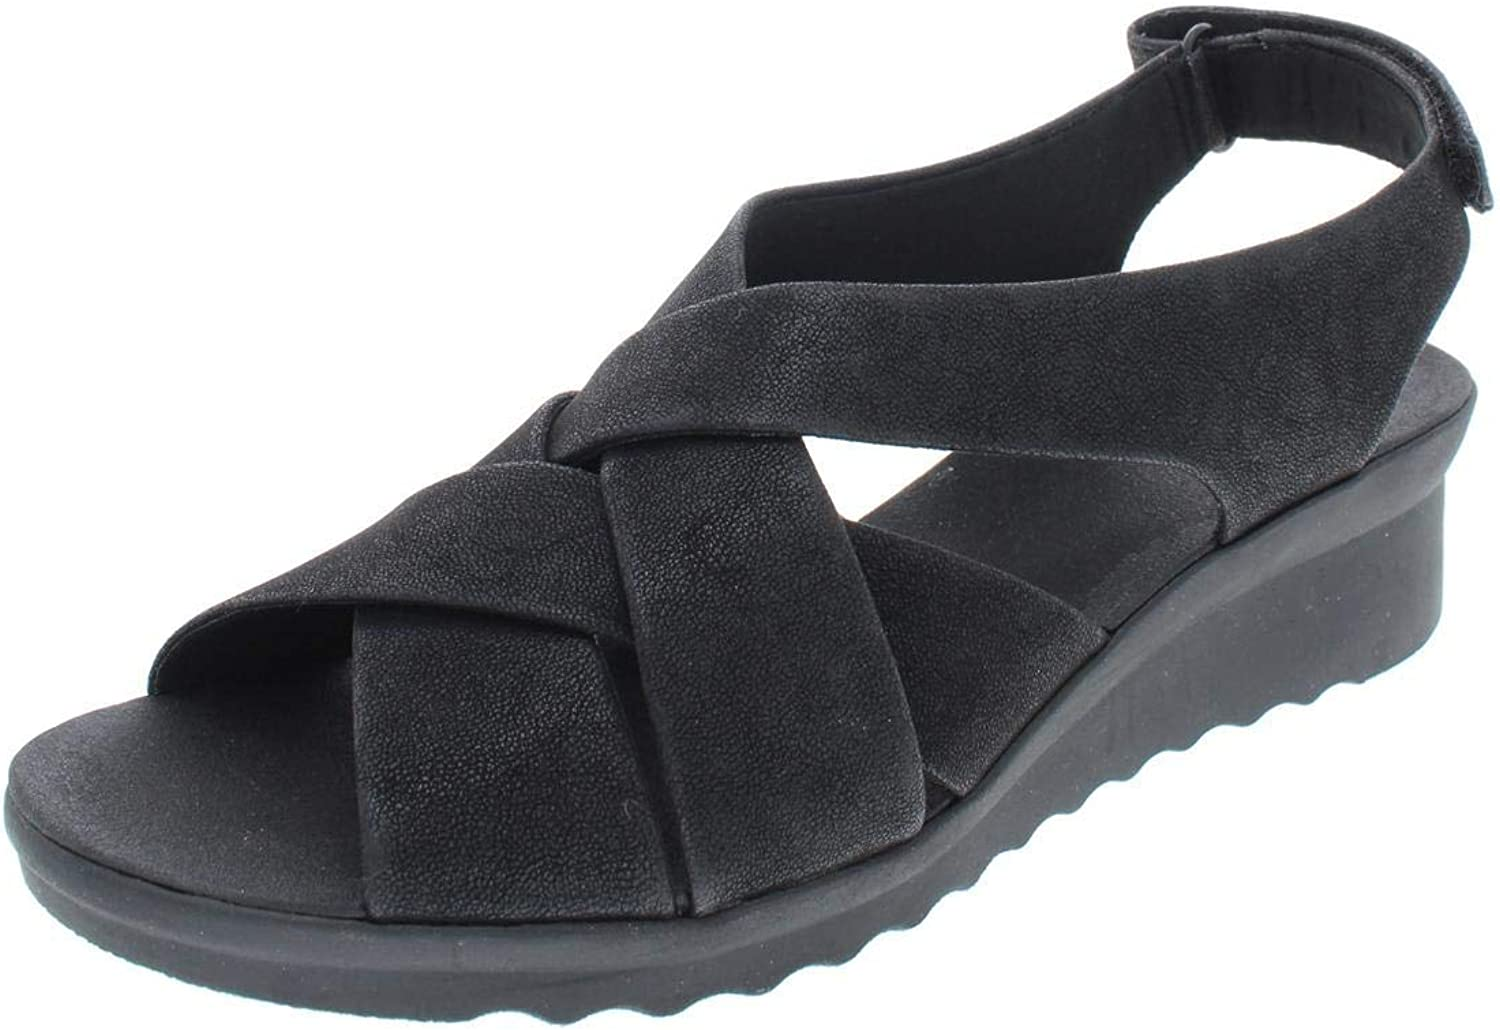 Clarks Womens Caddell JENA Faux Suede Criss-Cross Wedges